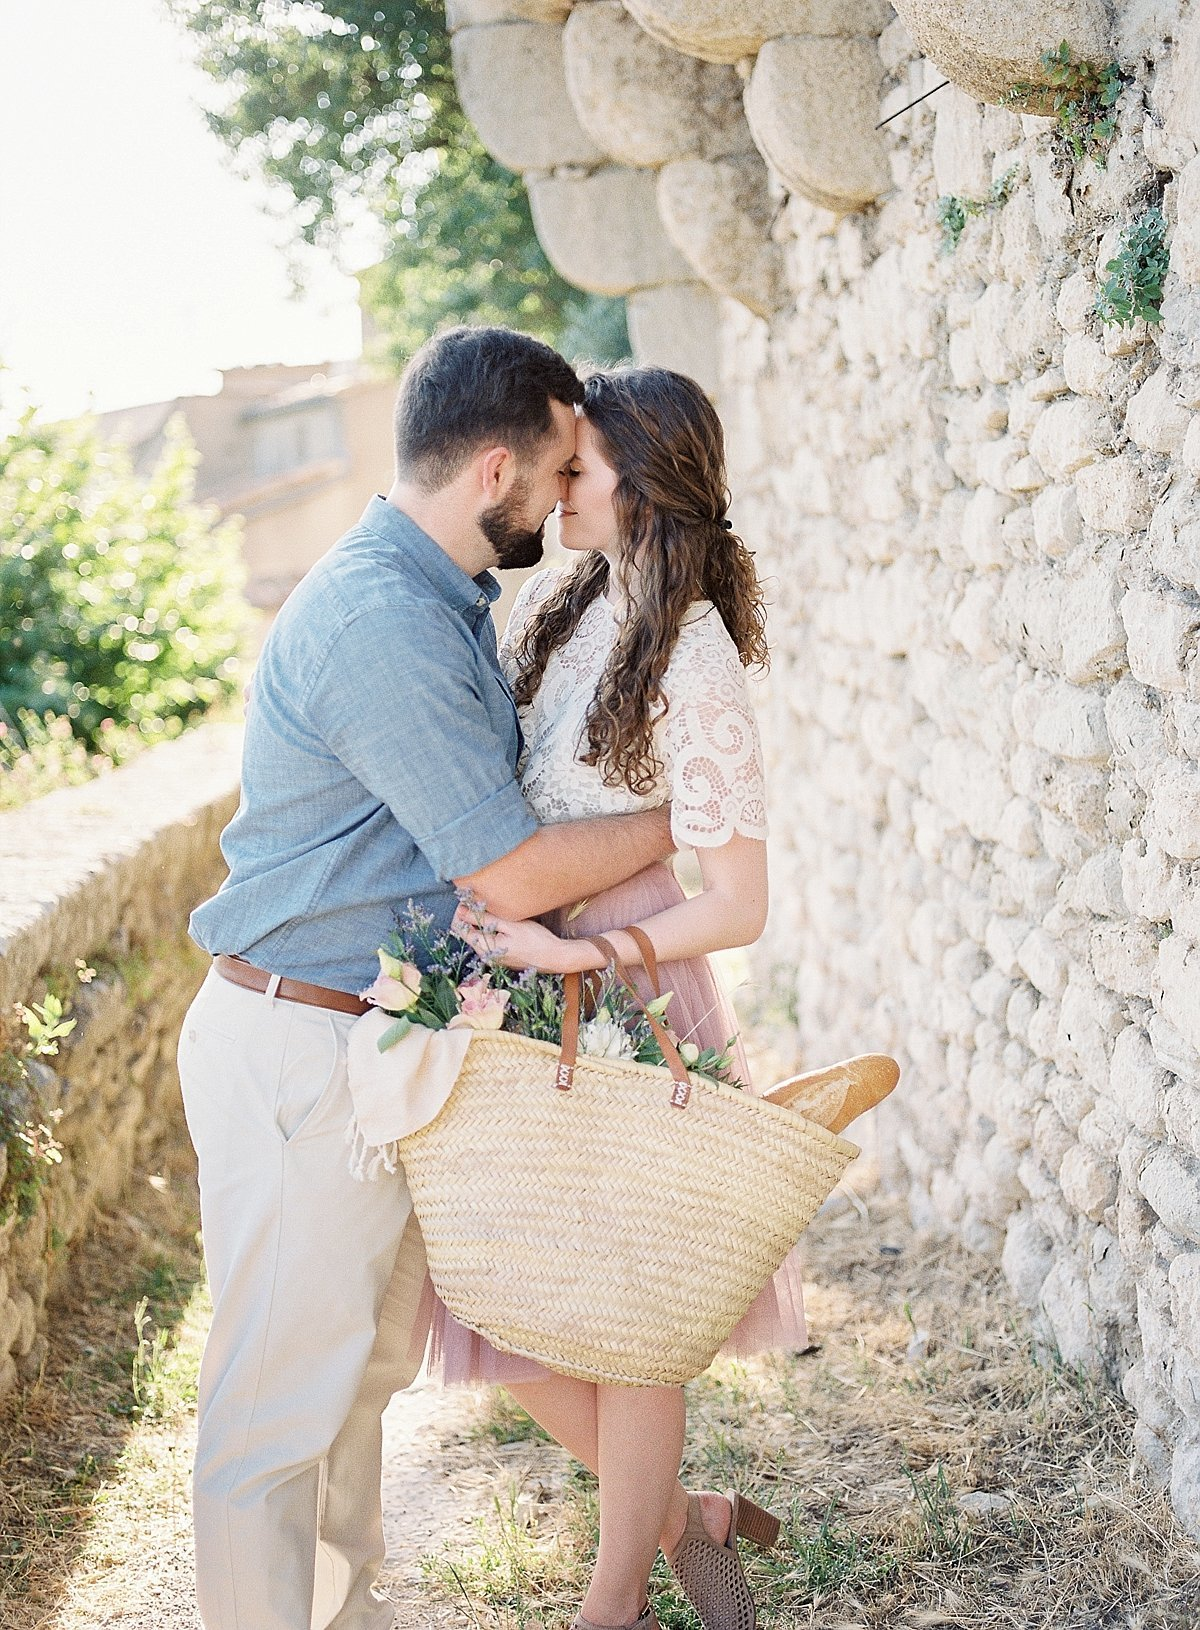 France-lavender-anniversary-session-alicia-yarrish-photography-18-2